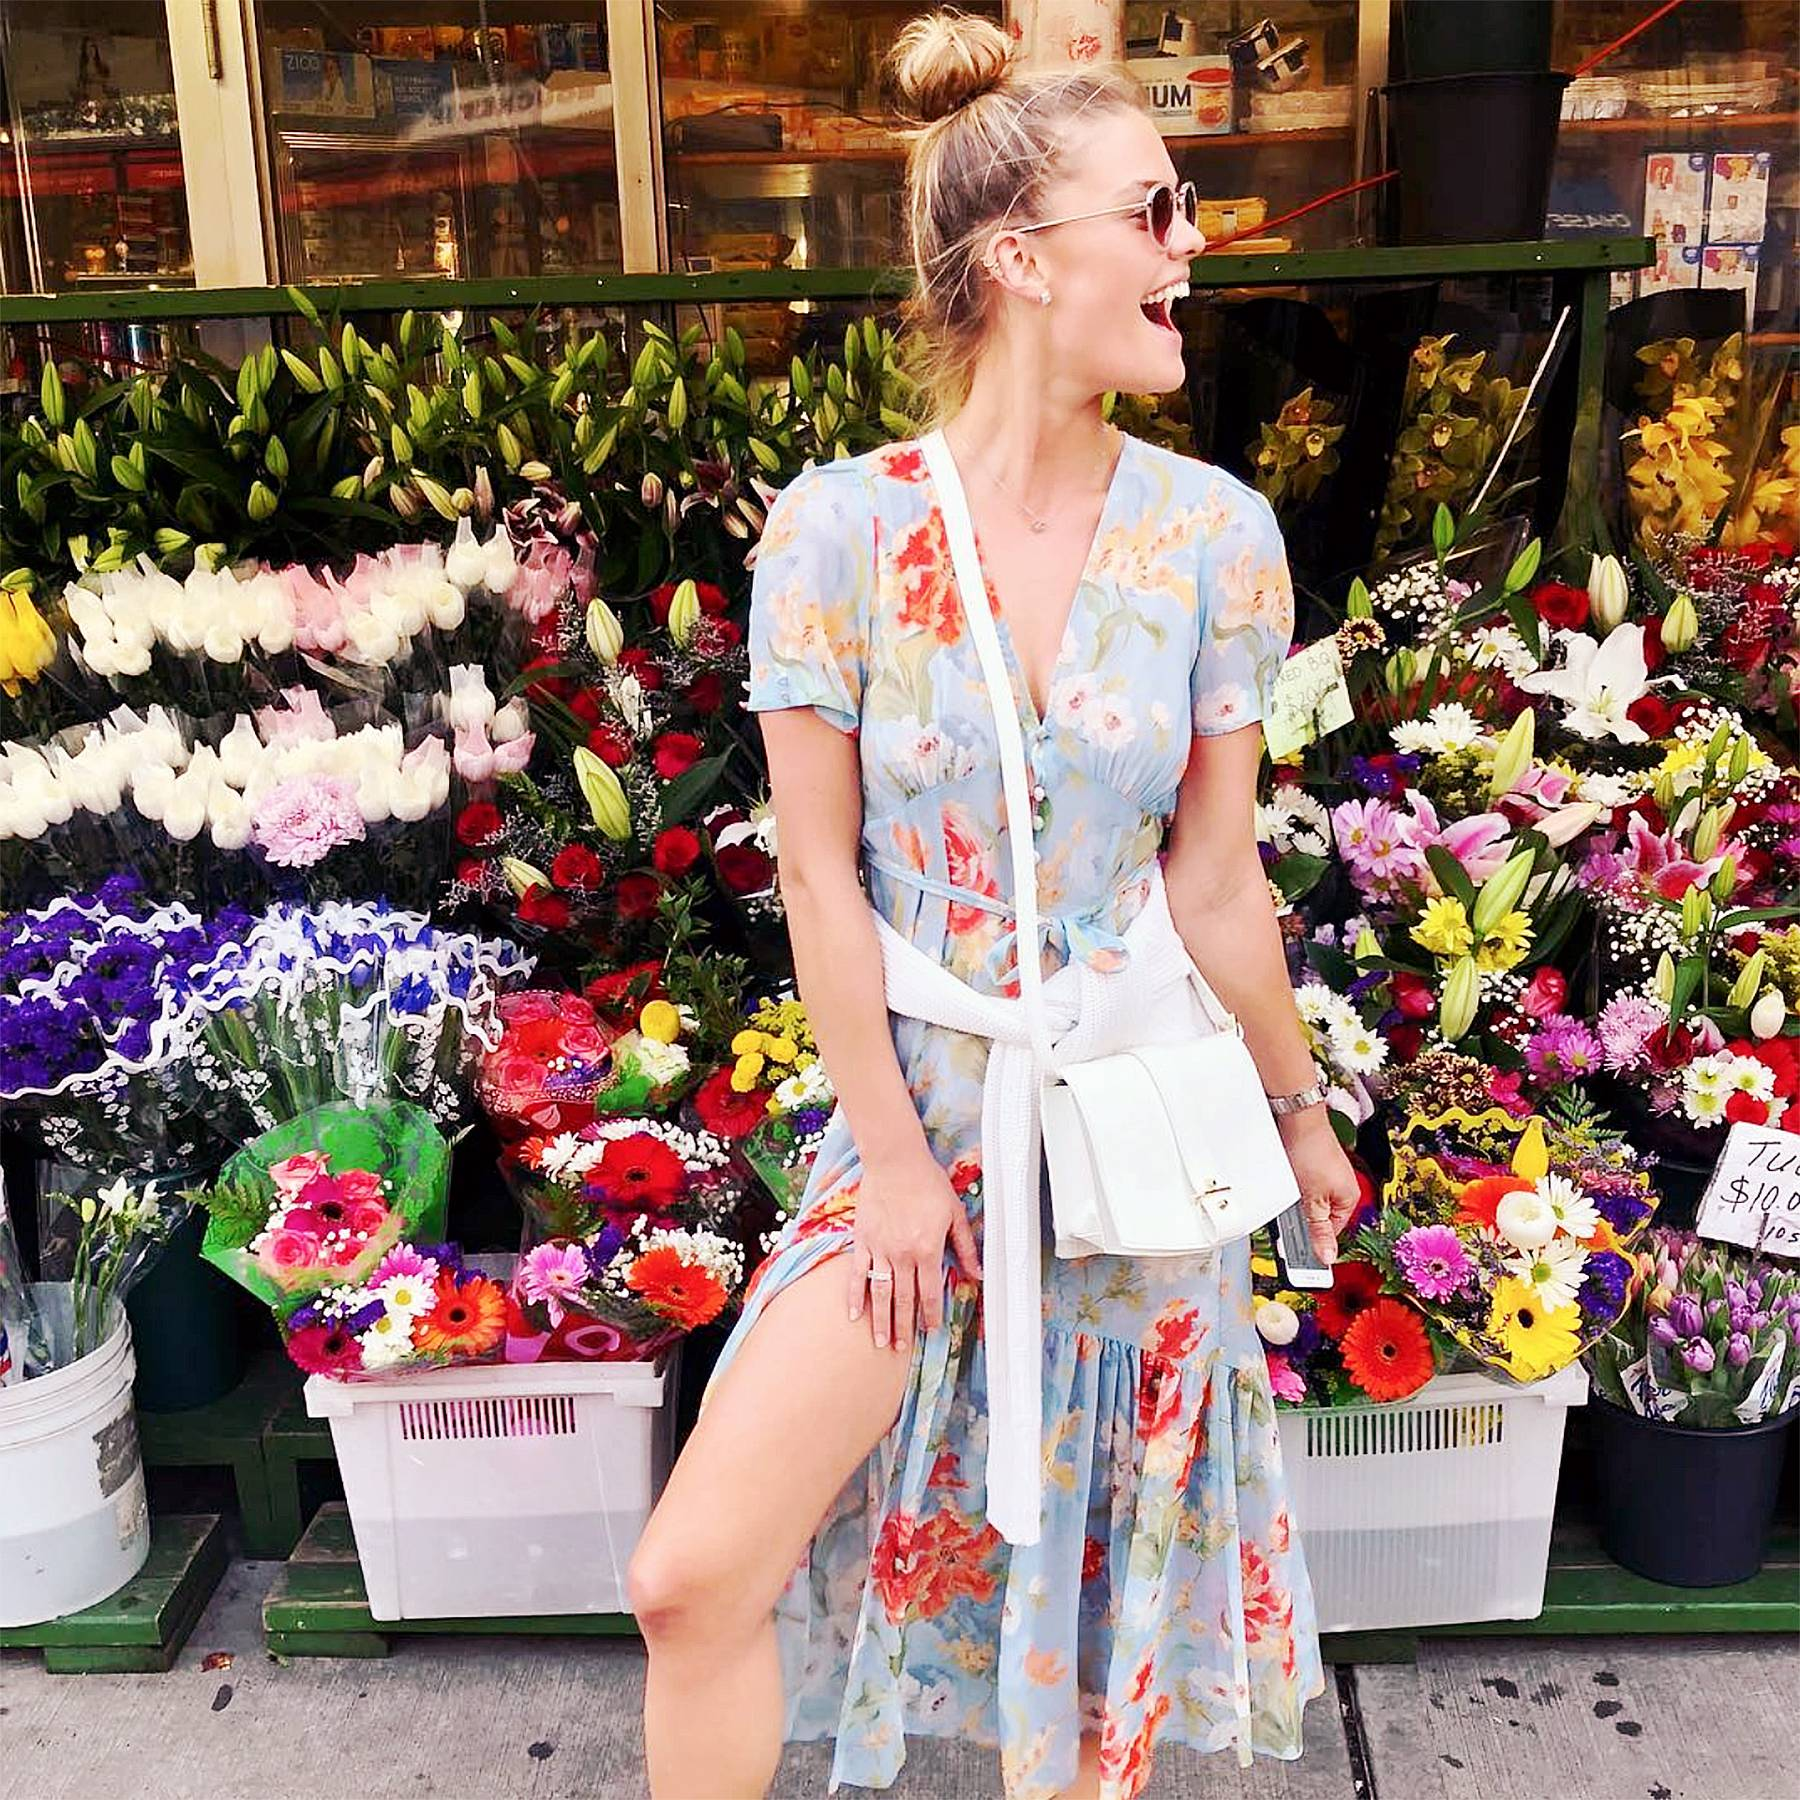 e189dc87f0b1 Zara Floral Midi Dress: Will This Be The Most Popular Dress Of The Summer?  | Glamour UK